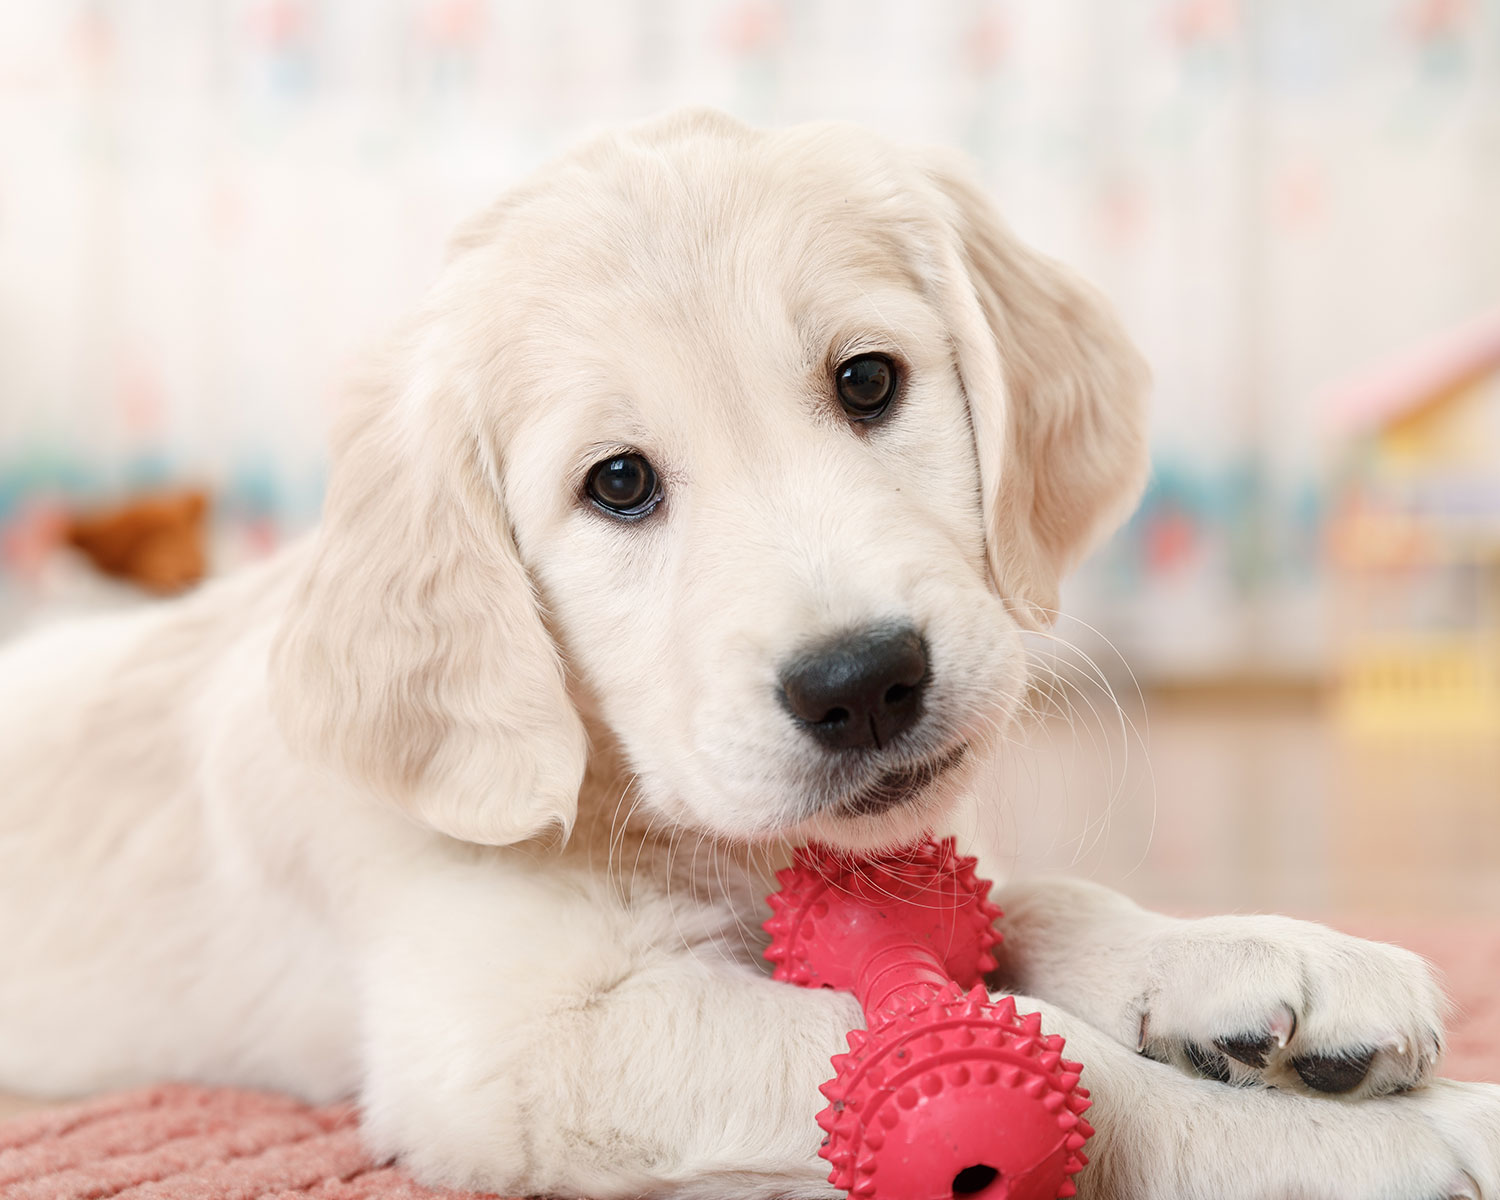 Puppy playing with chew toy.